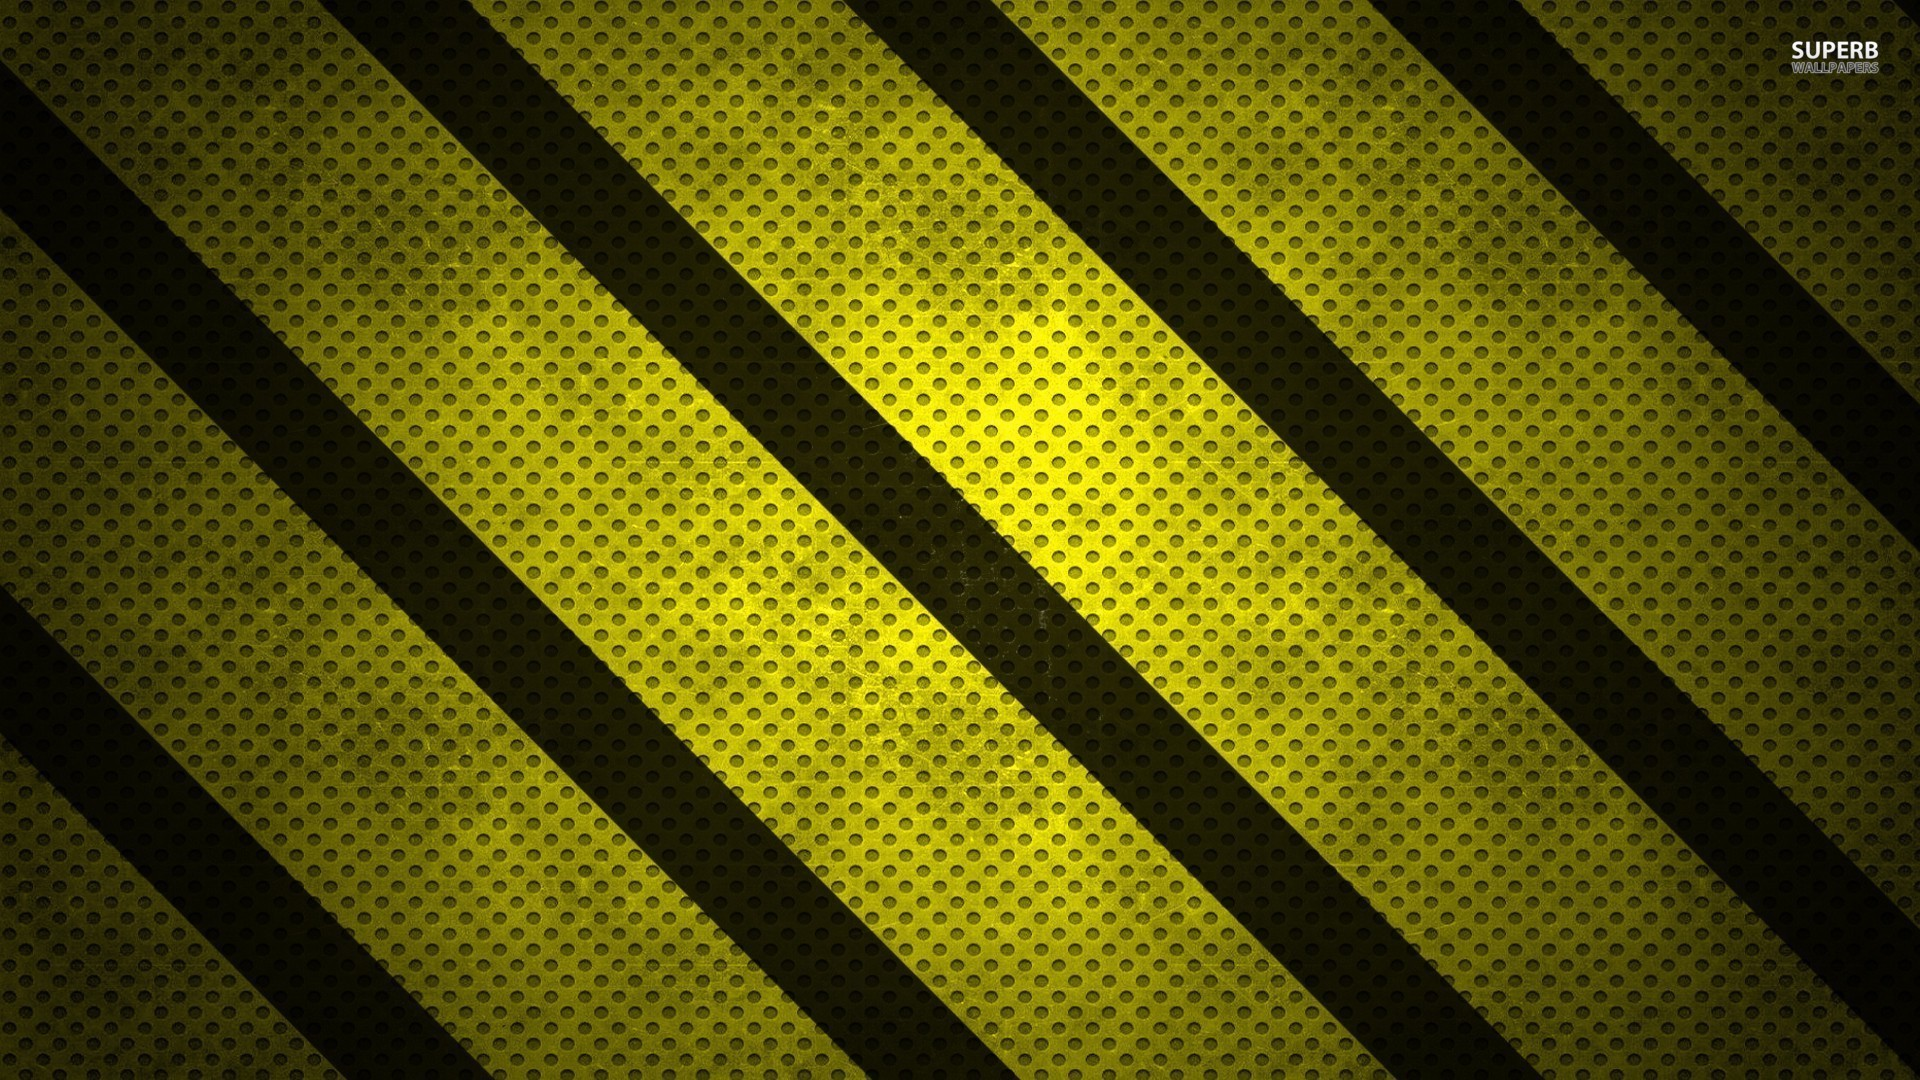 Neon Yellow Backgrounds (49+ images)